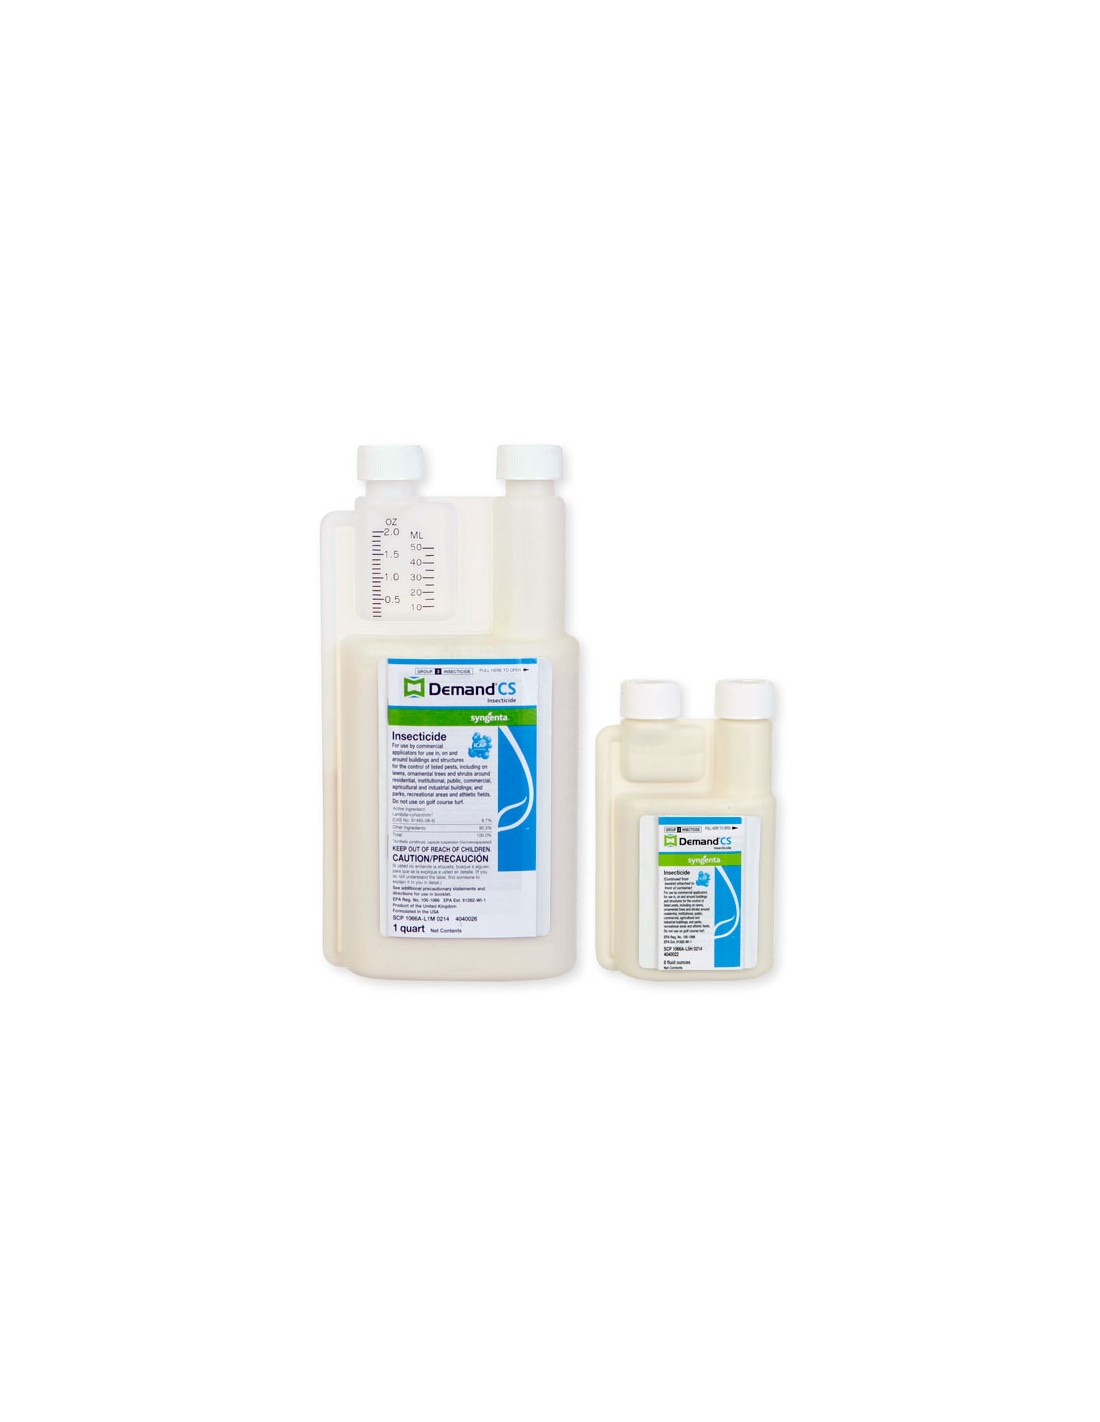 Can you mix precor igr with demand cs for indoor flea treatment and at what rate ? 1oz per gallon??